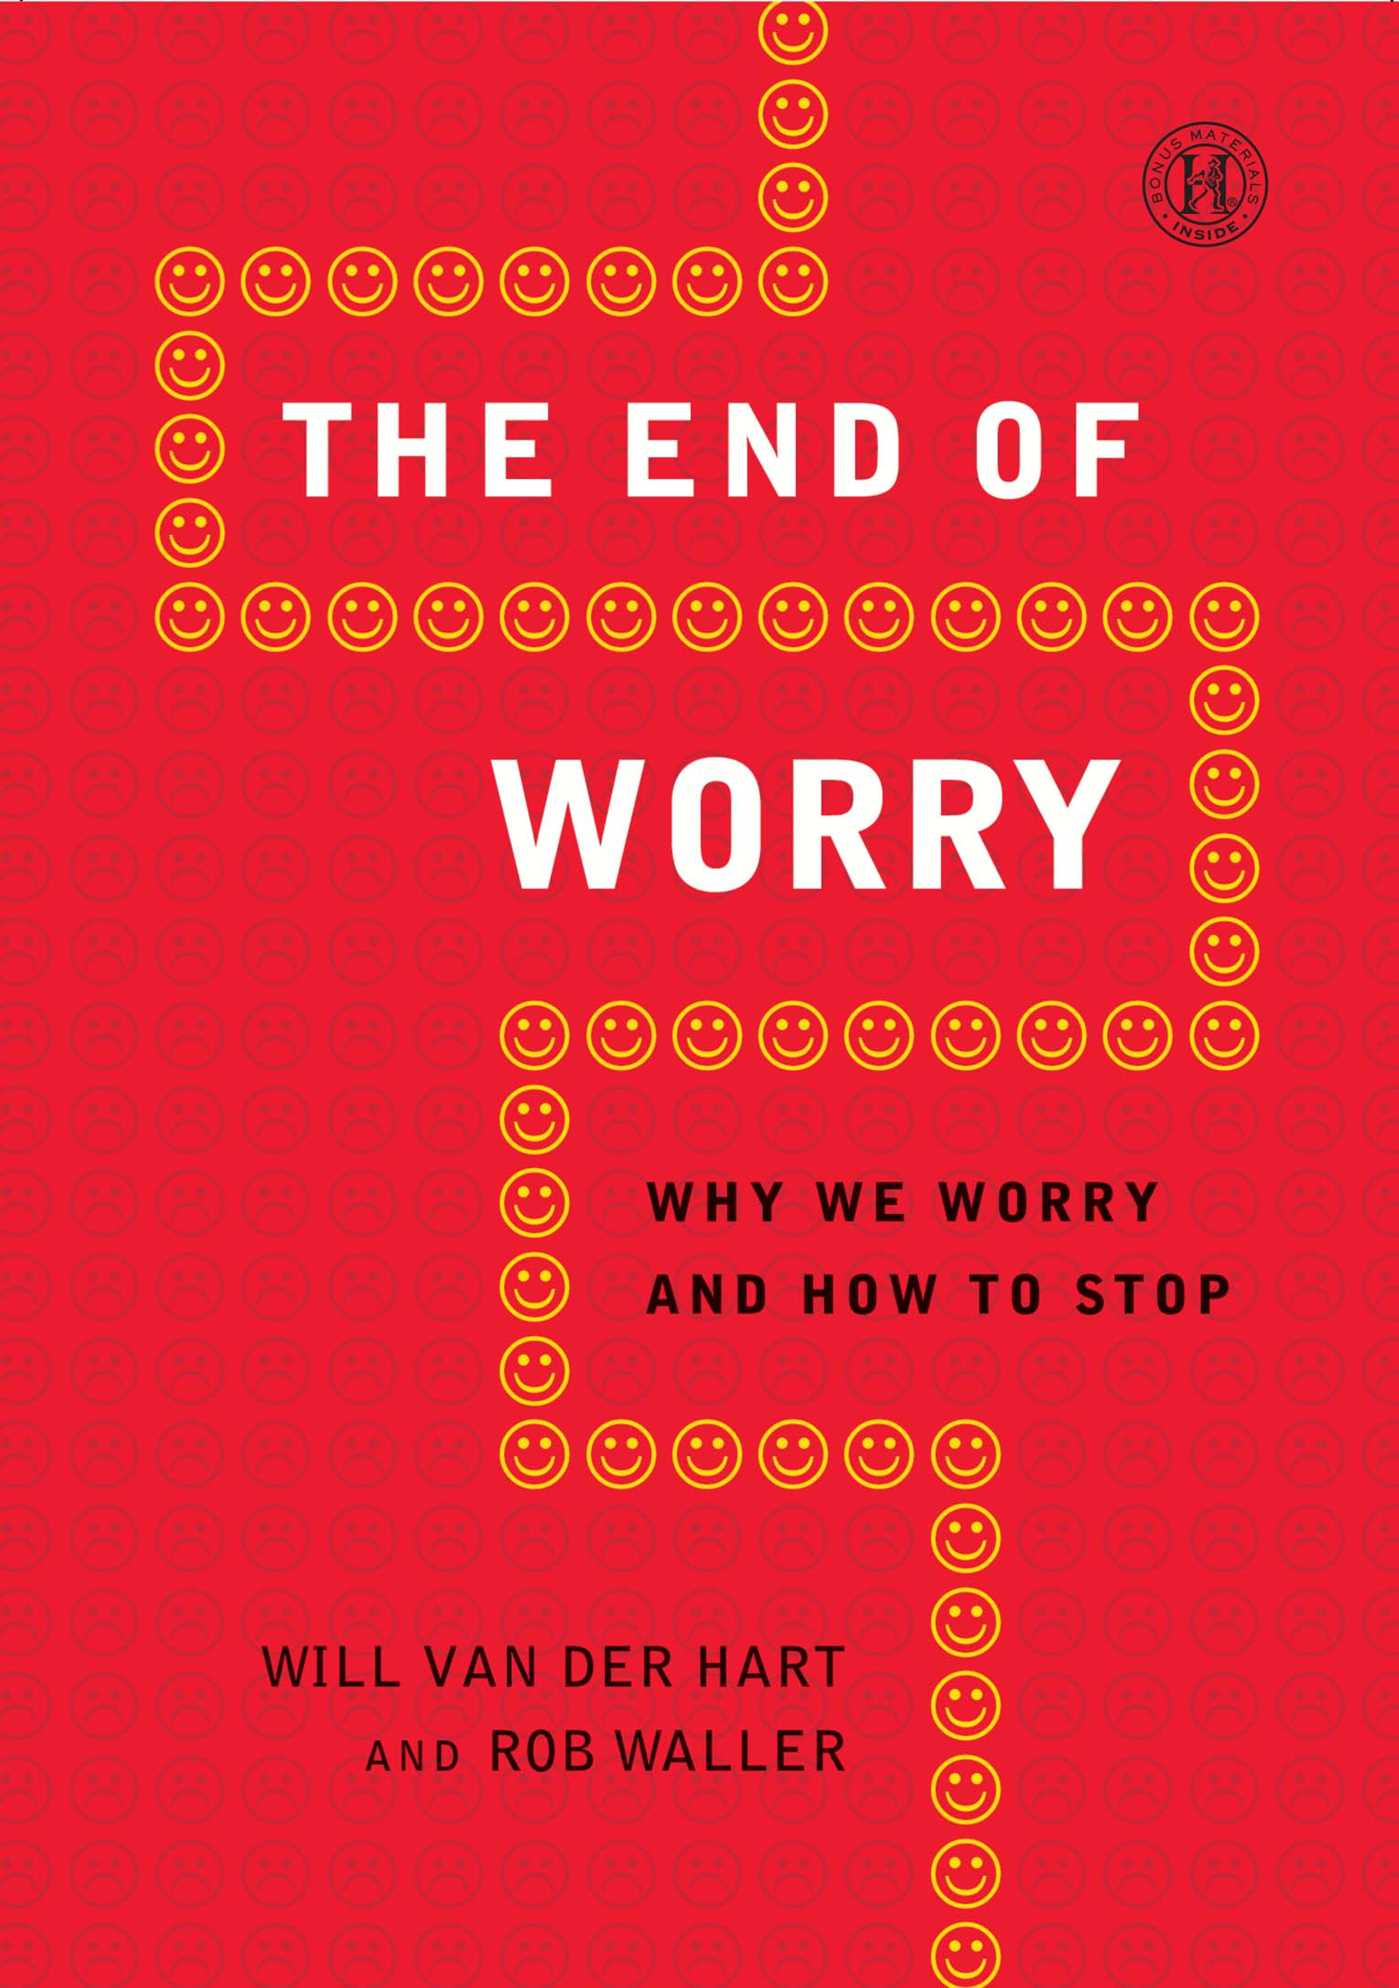 End of worry 9781451682809 hr